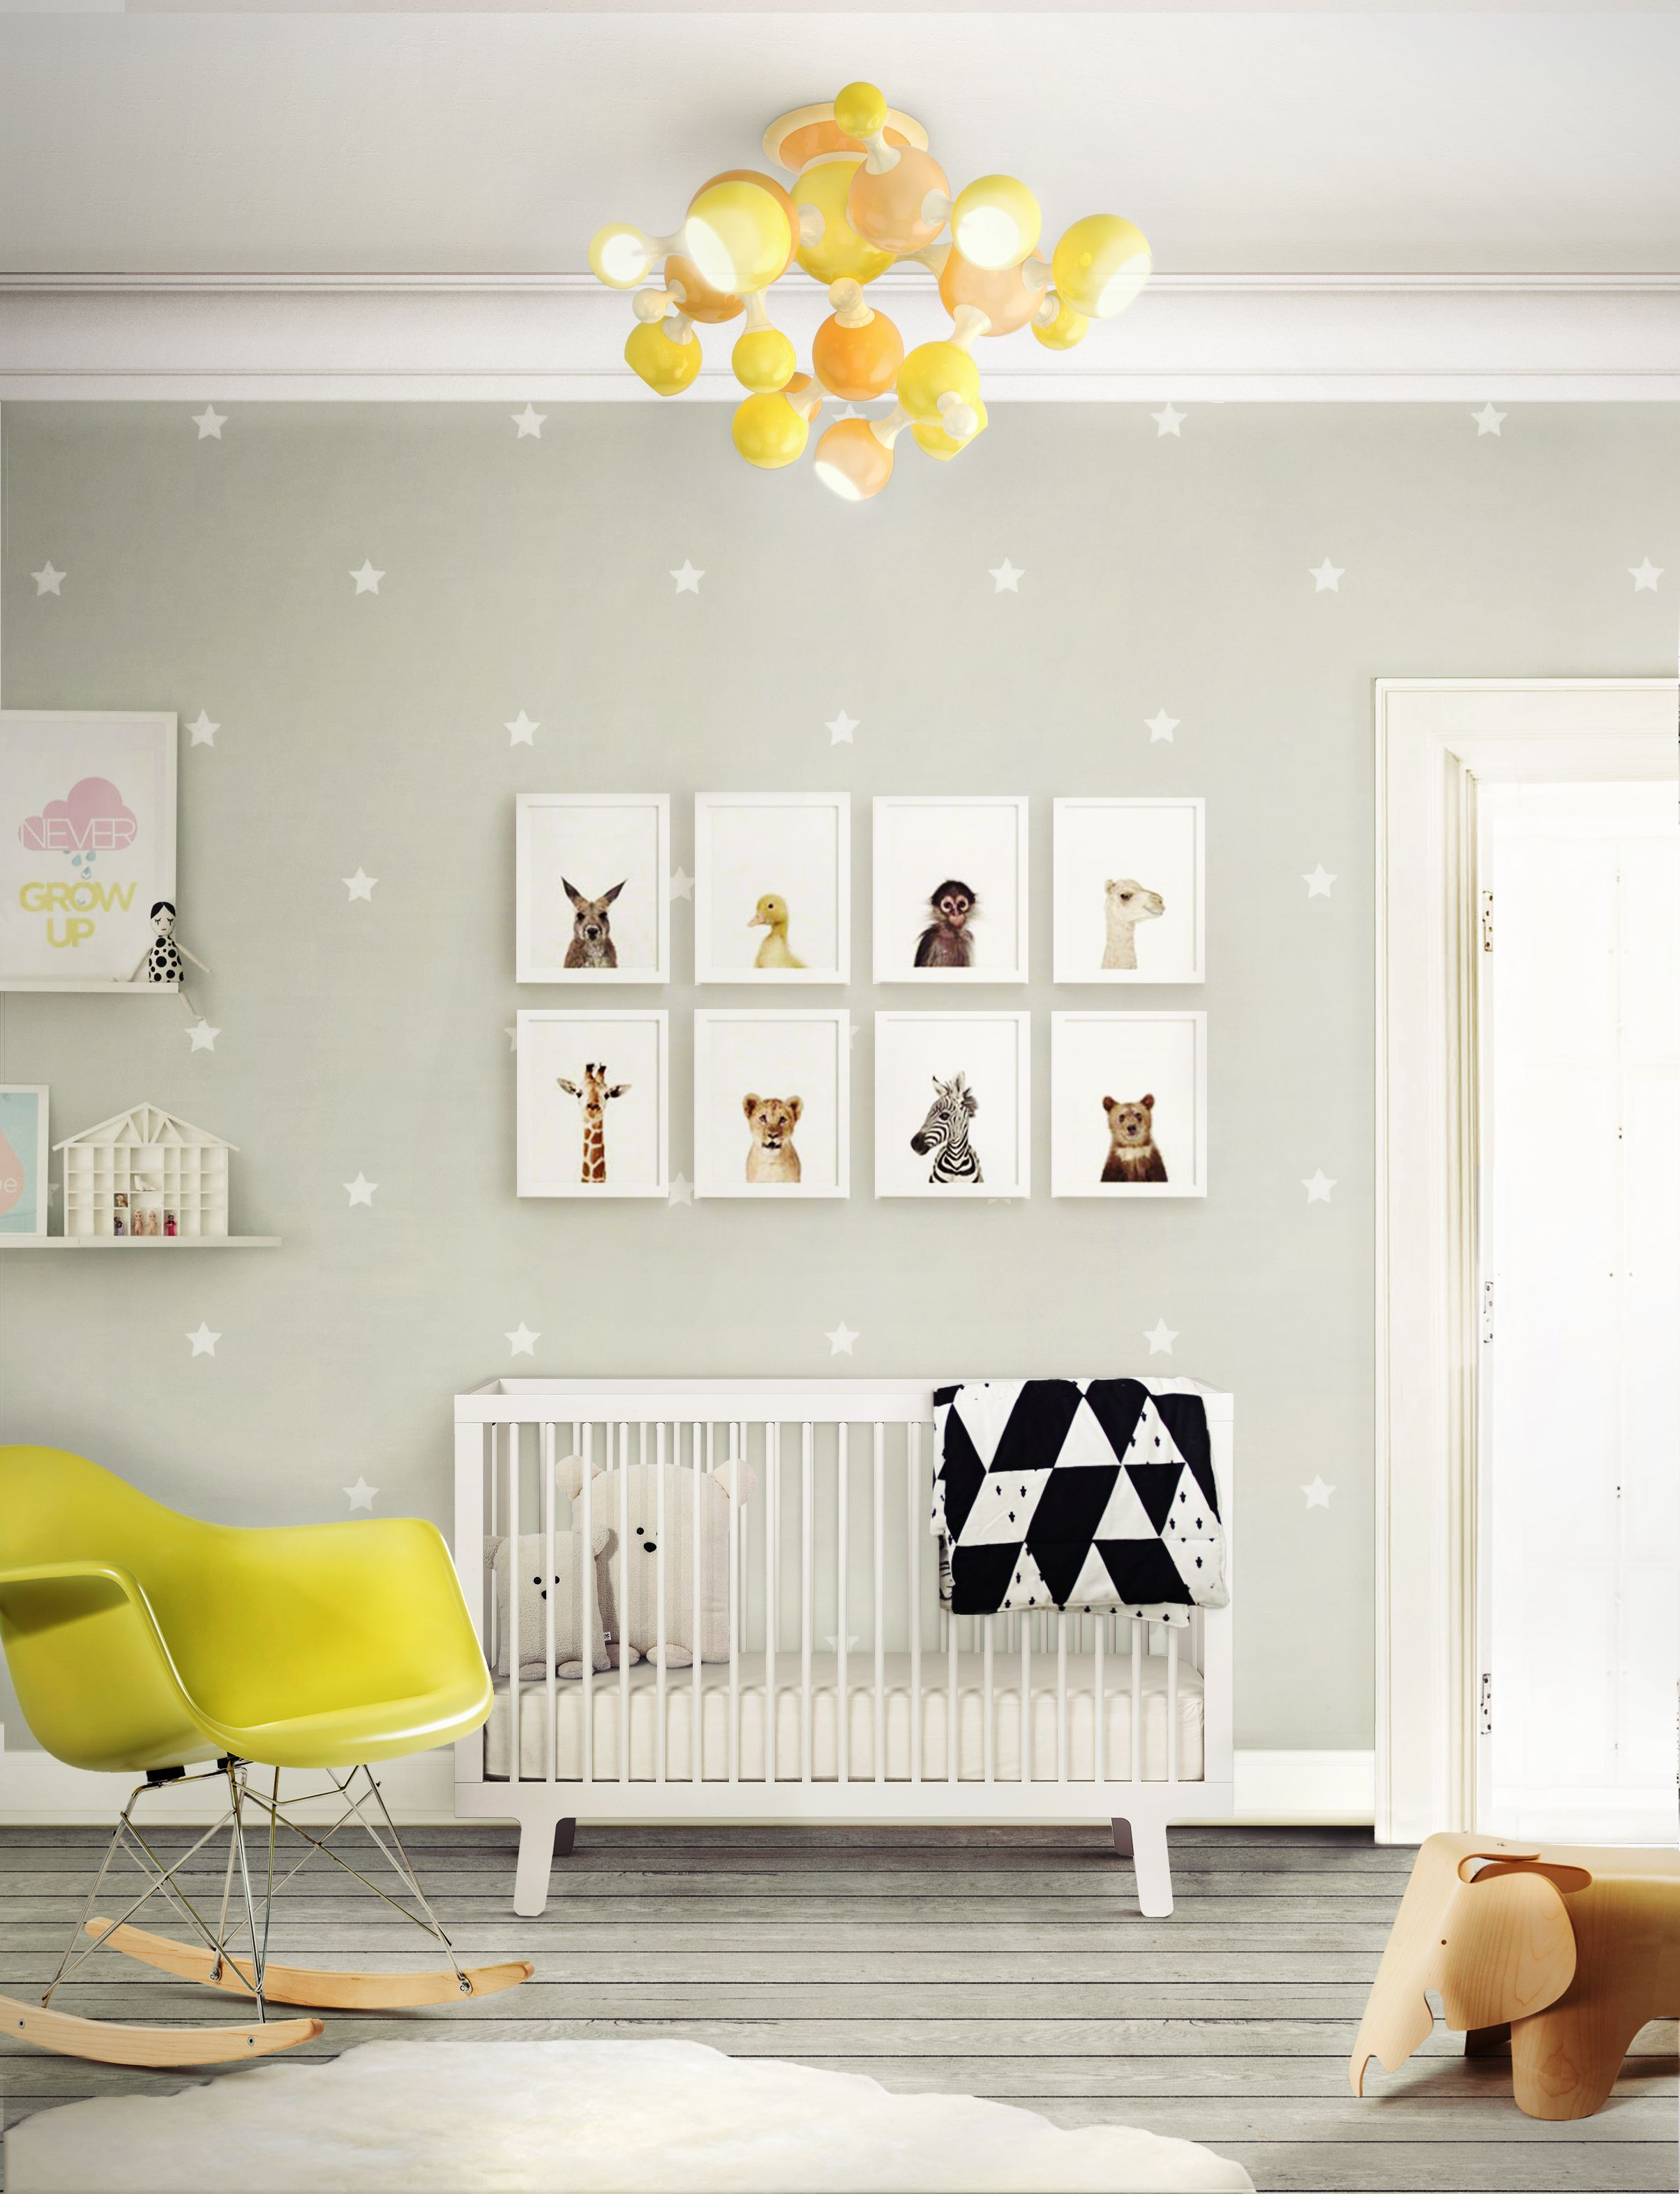 neons neutrals match made in heaven neutral nurseries gender neons neutrals match made in heaven ideas for 2015baby room